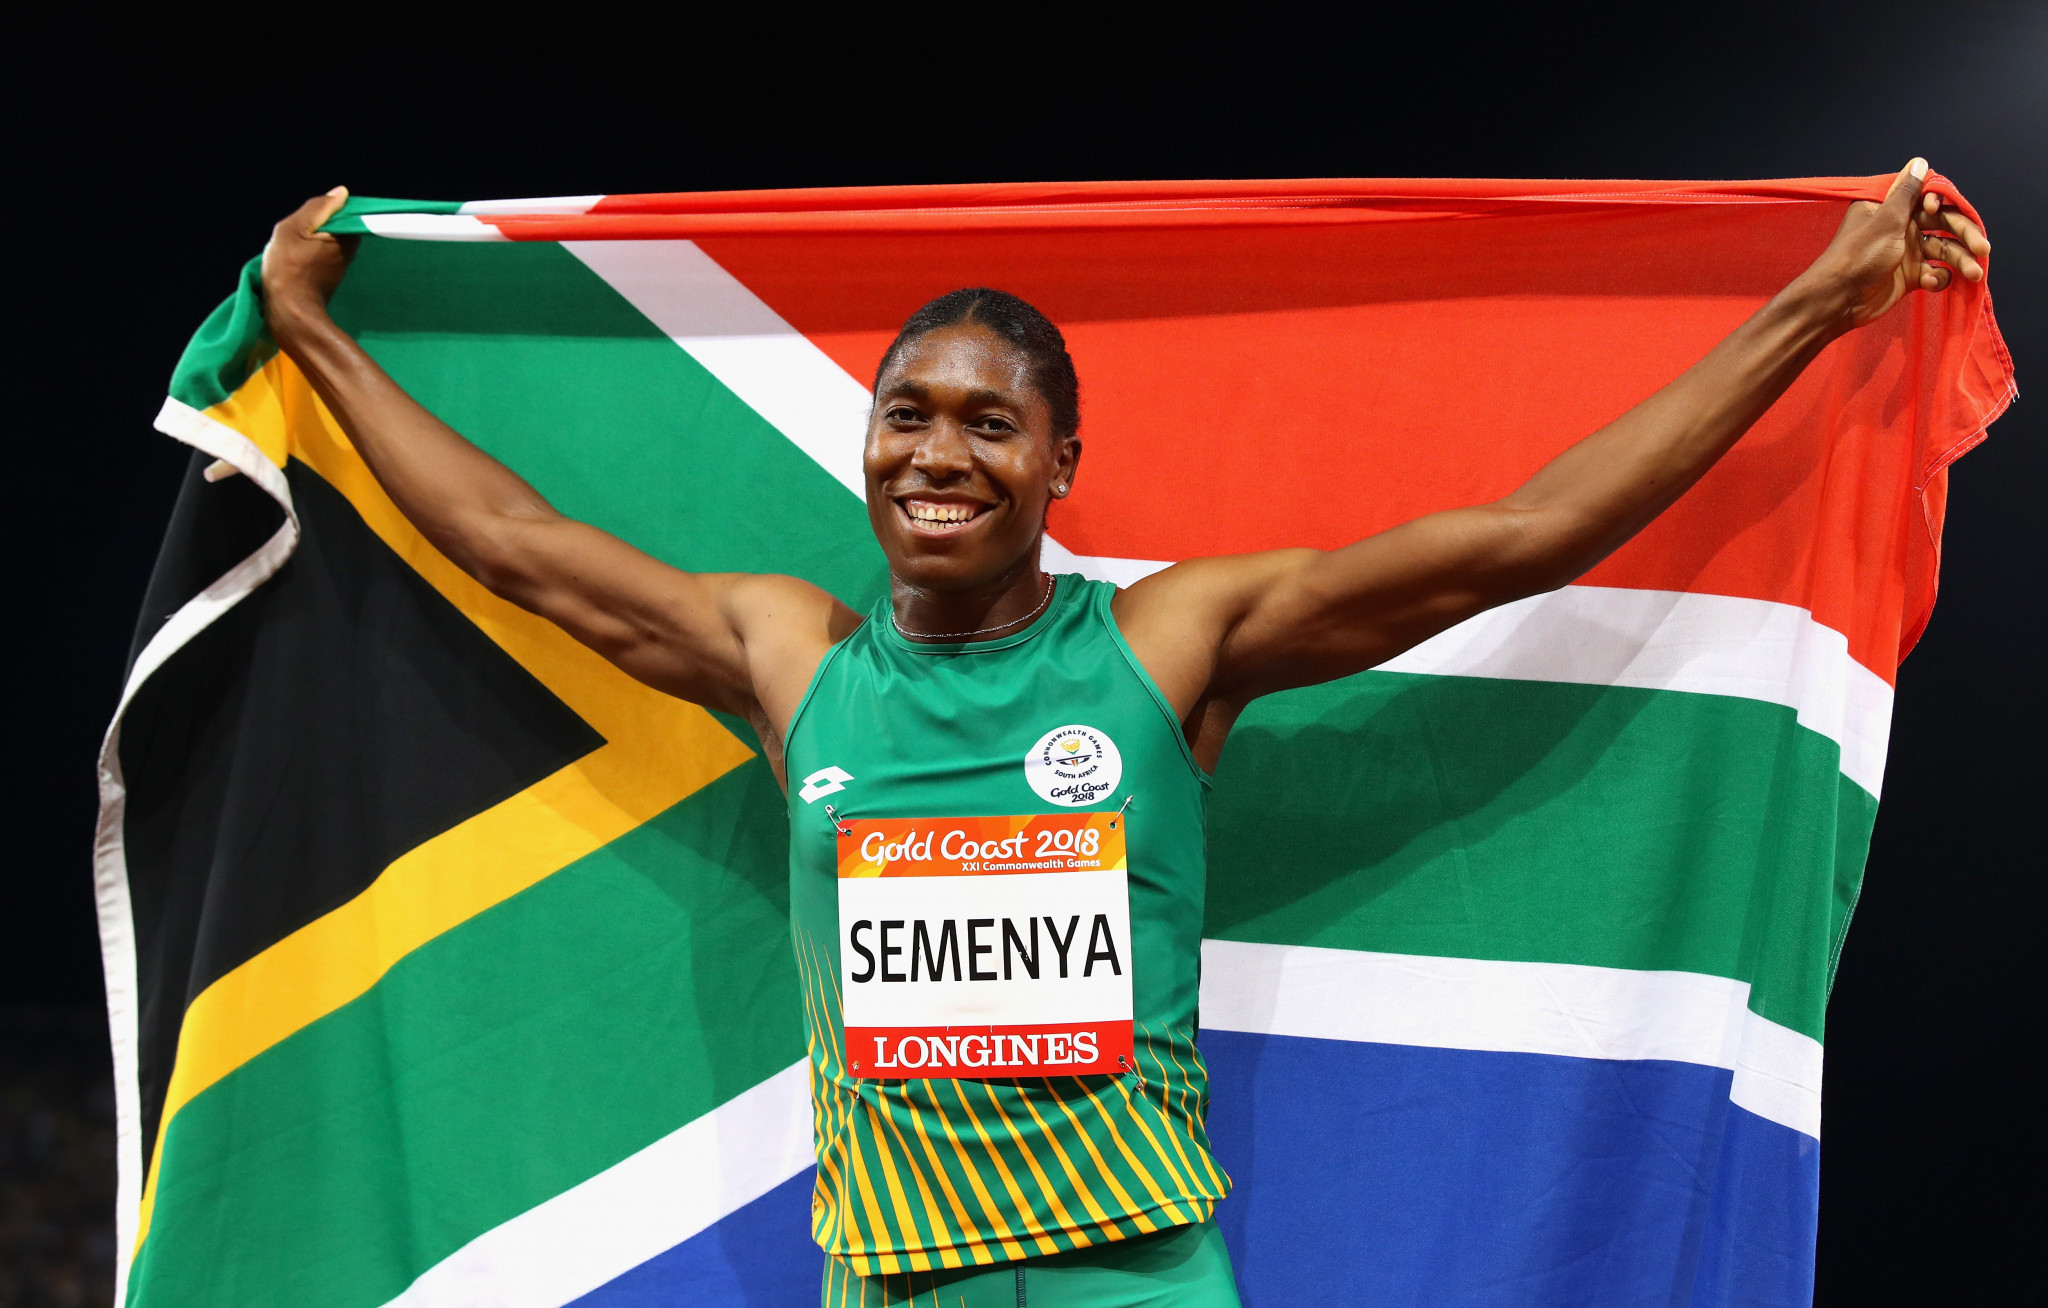 The IAAF's new regulations could mean double Olympic champion Caster Semenya is banned from competing at international level ©Getty Images